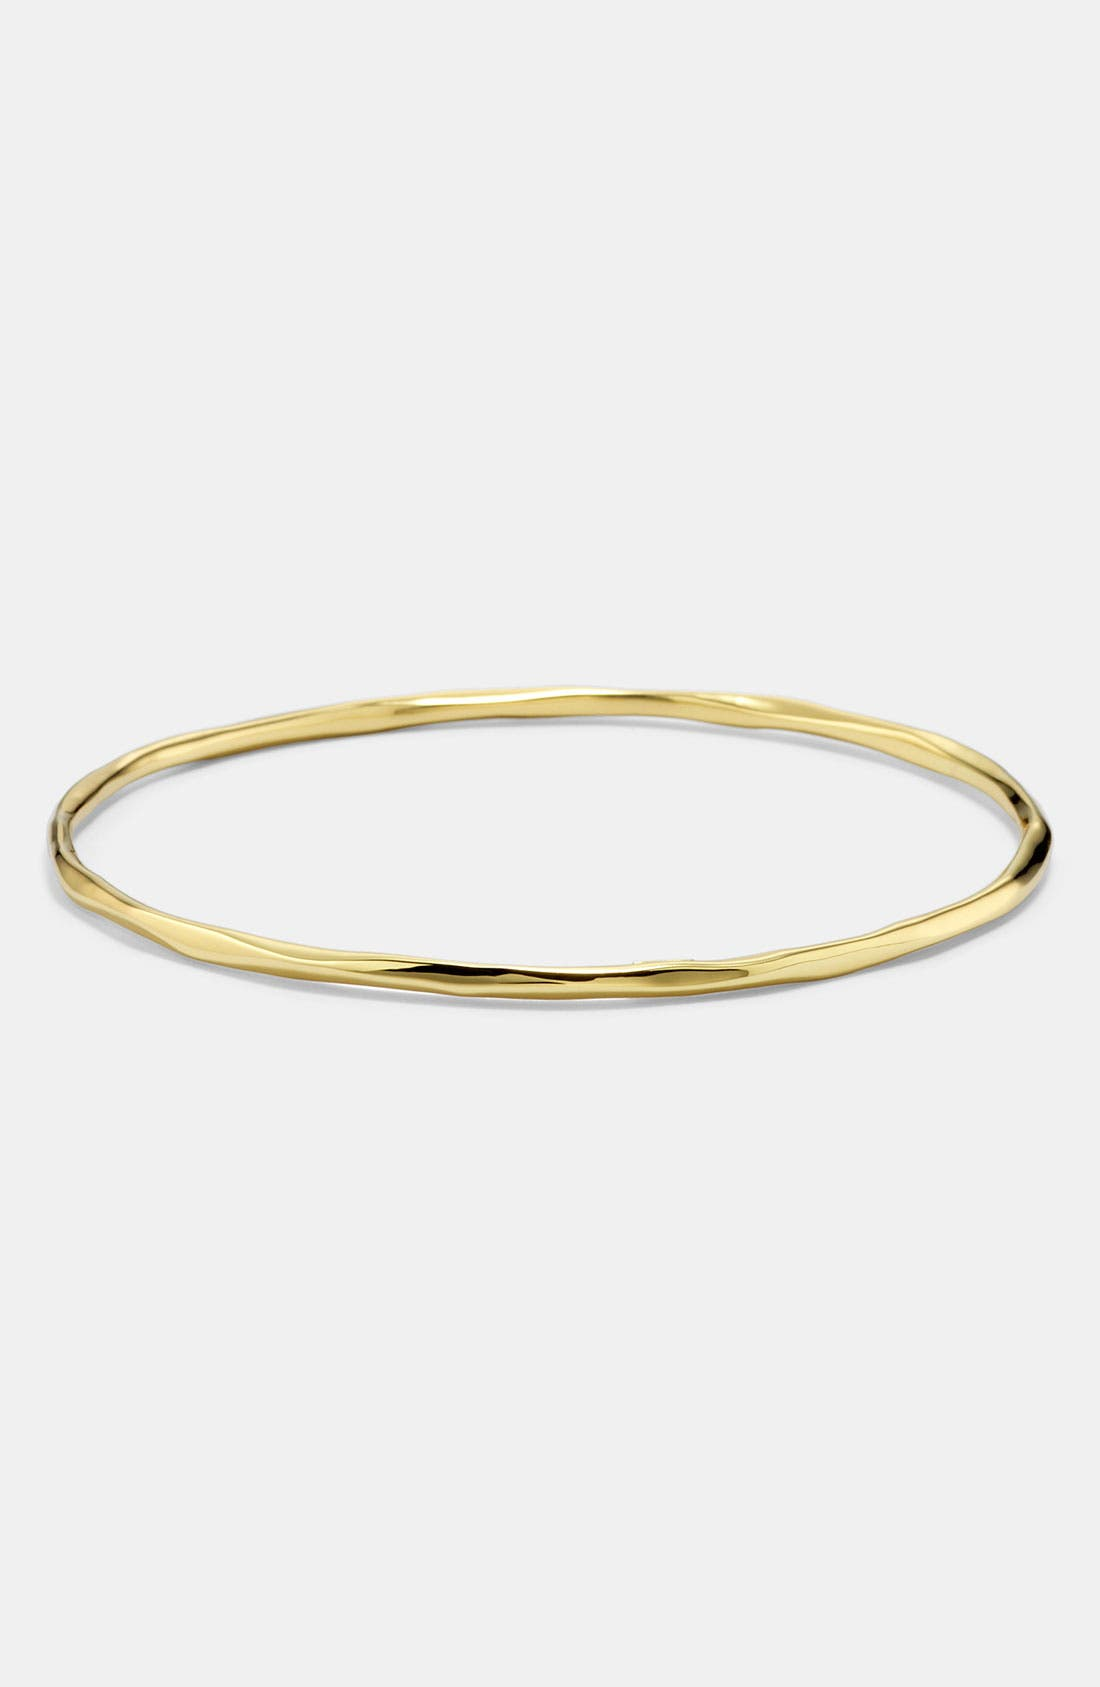 Alternate Image 1 Selected - Ippolita 'Glamazon' Faceted 18k Gold Bangle